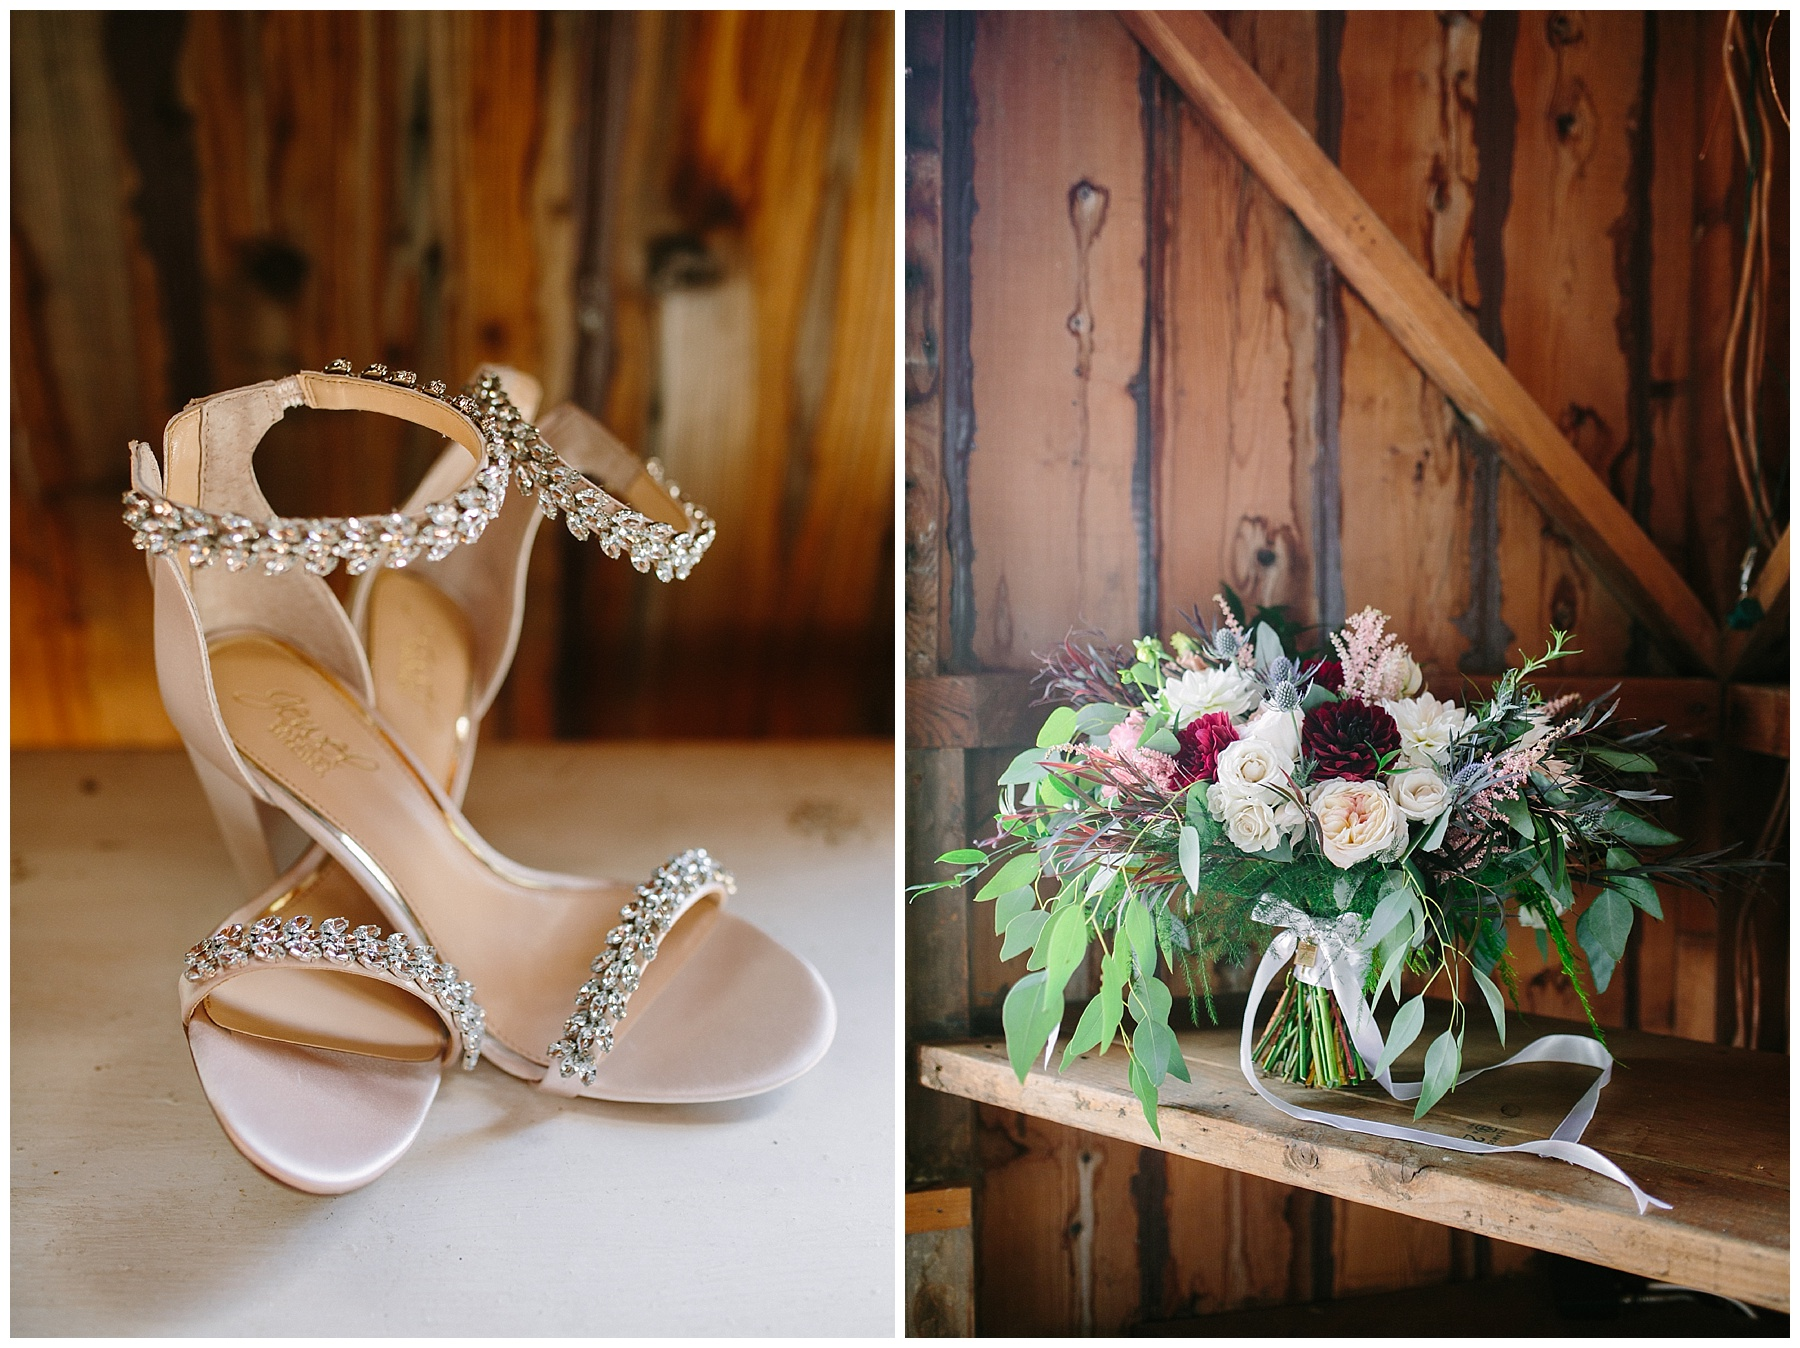 bagdley mishka wedding shoes bouquet